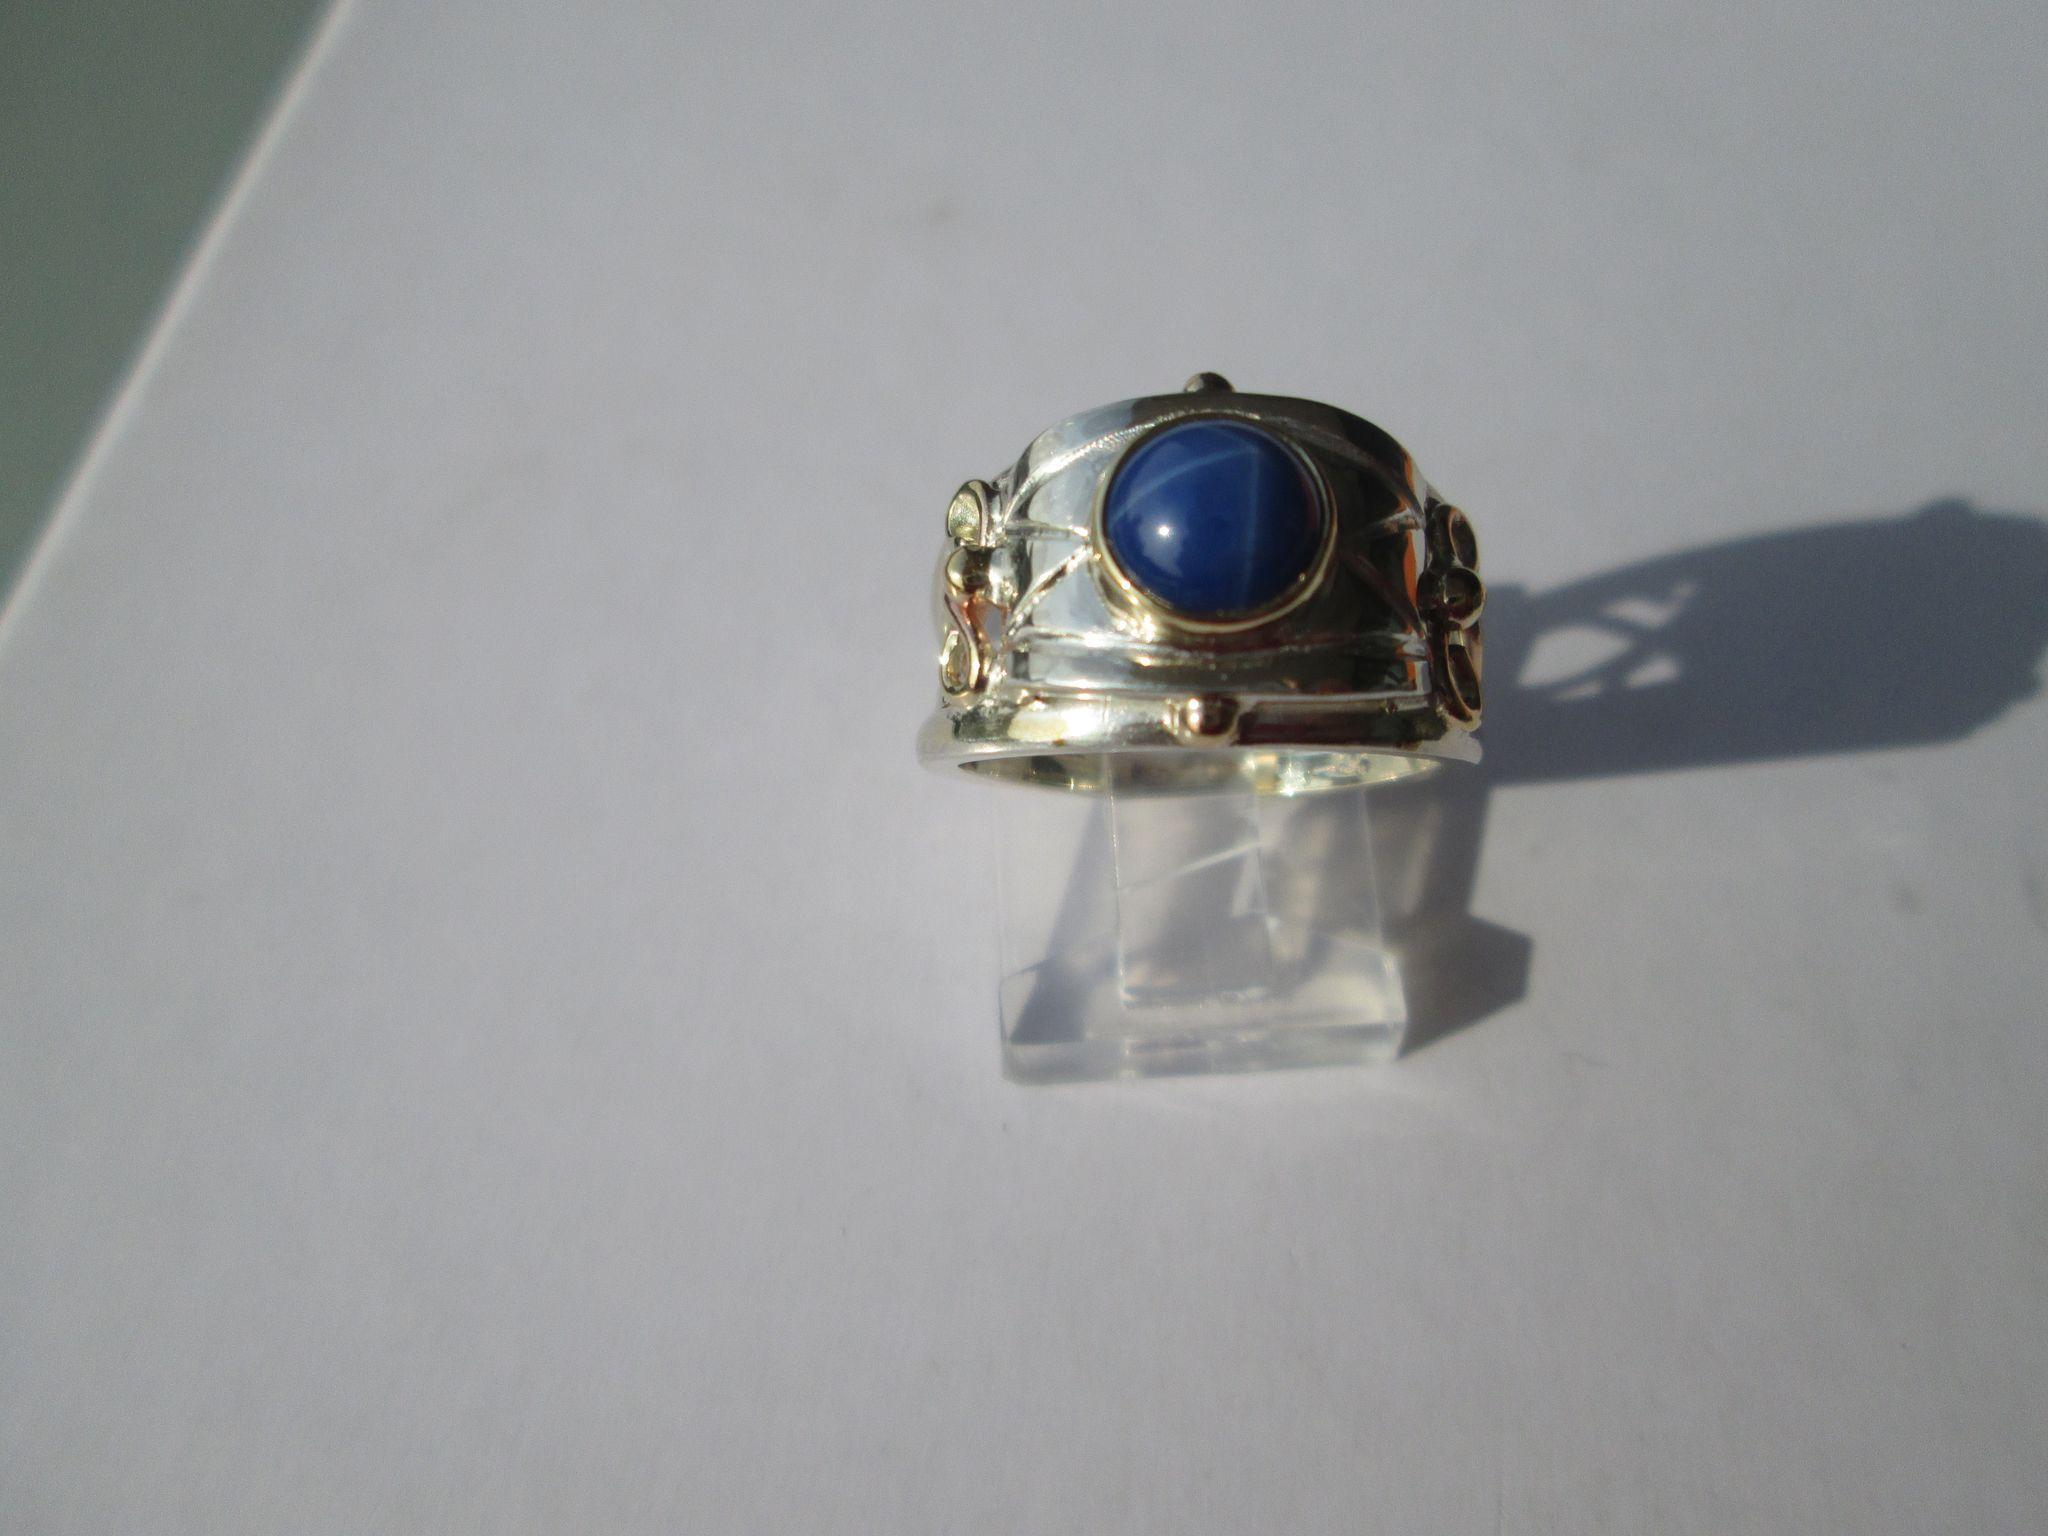 Lindy Star Sapphire Solitaire Silver/9kt Pink Gold Artisan Ladies Ring